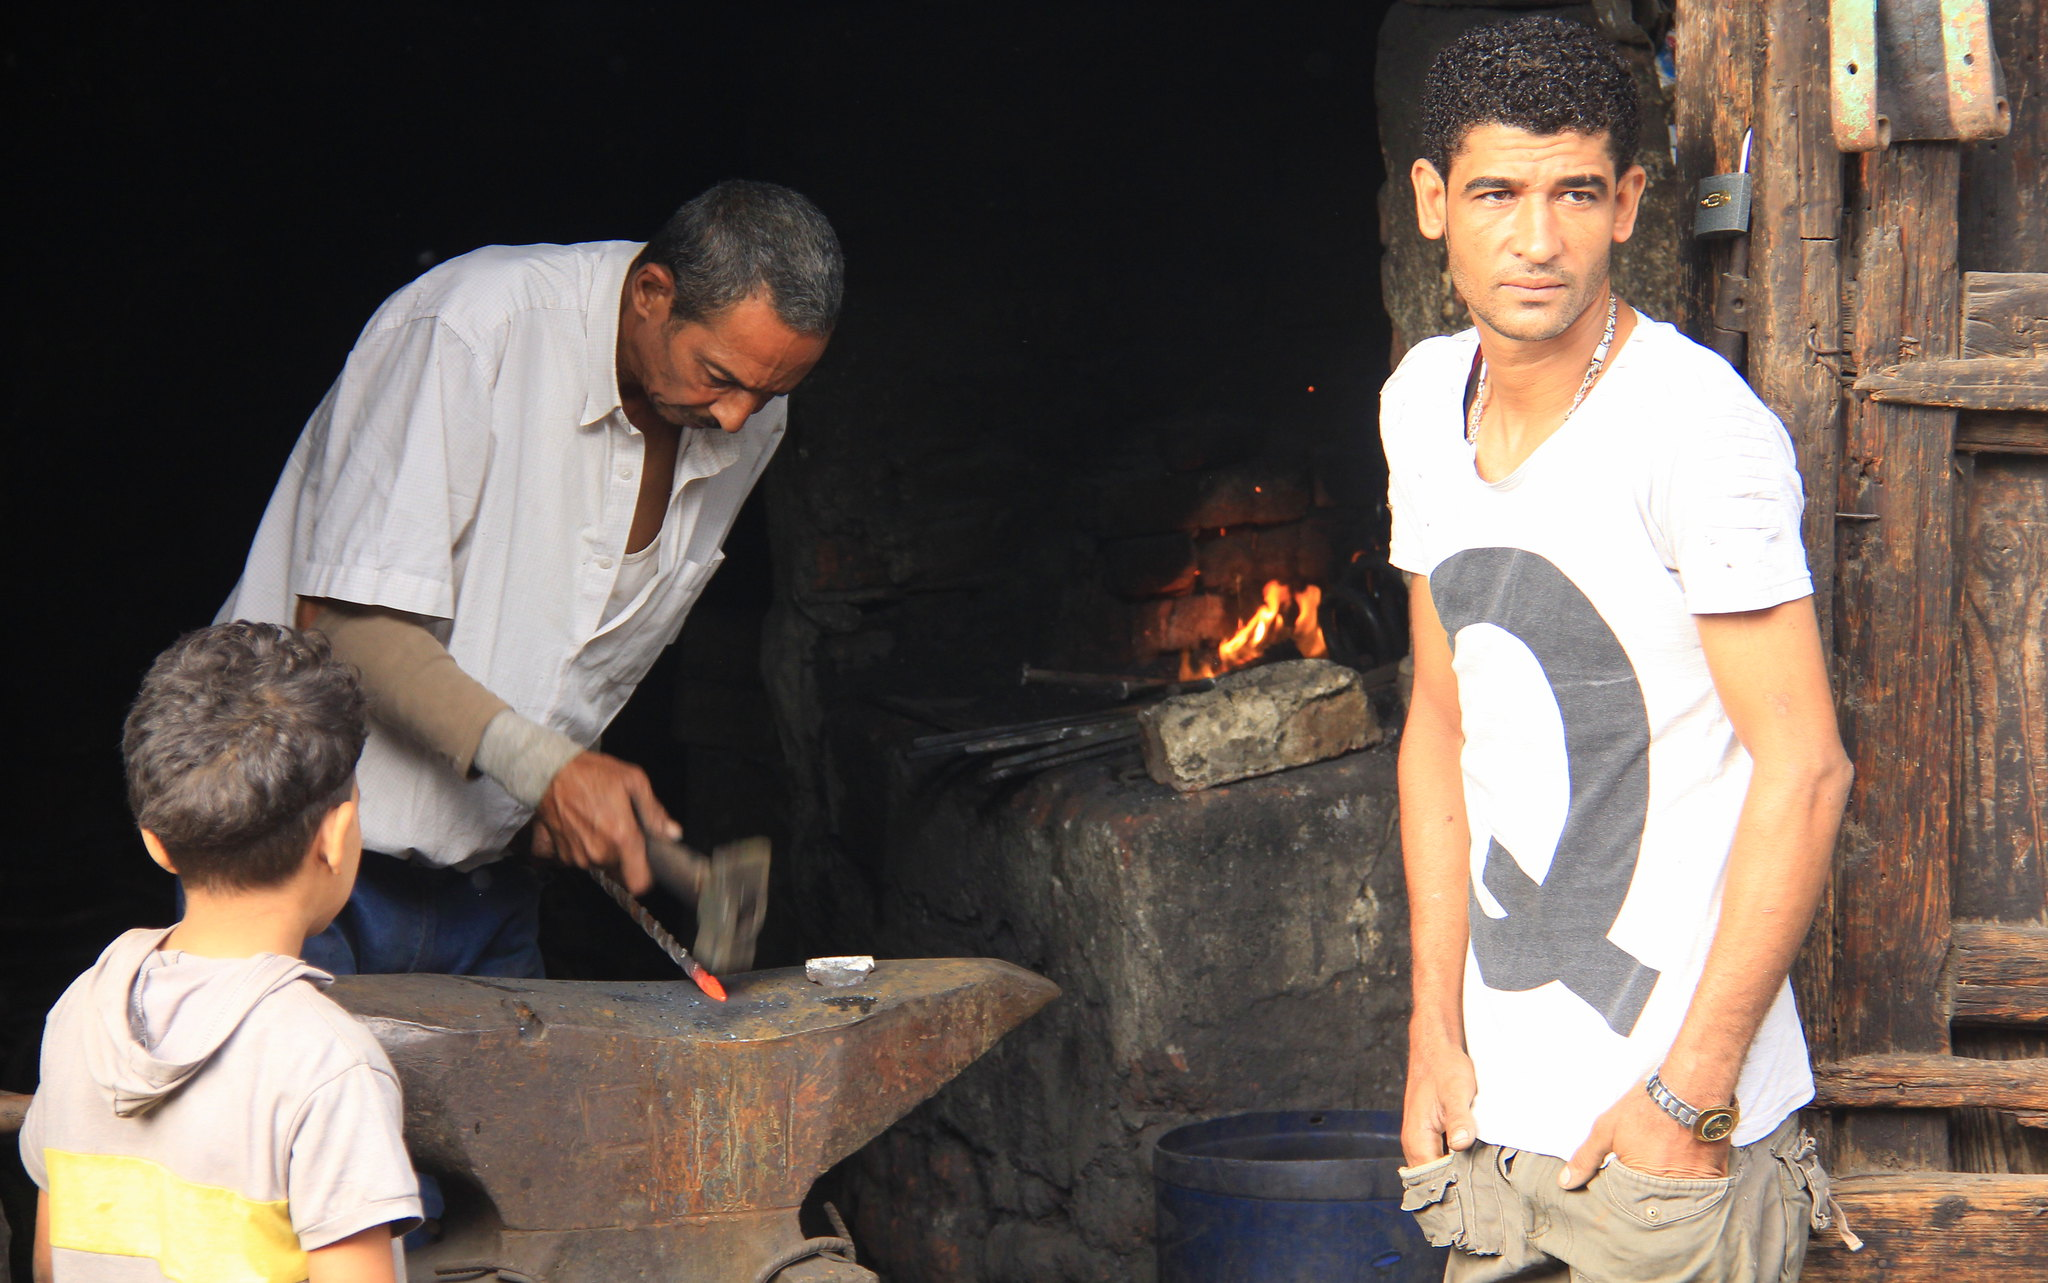 Many small service providers like blacksmiths have shops at souq al goma